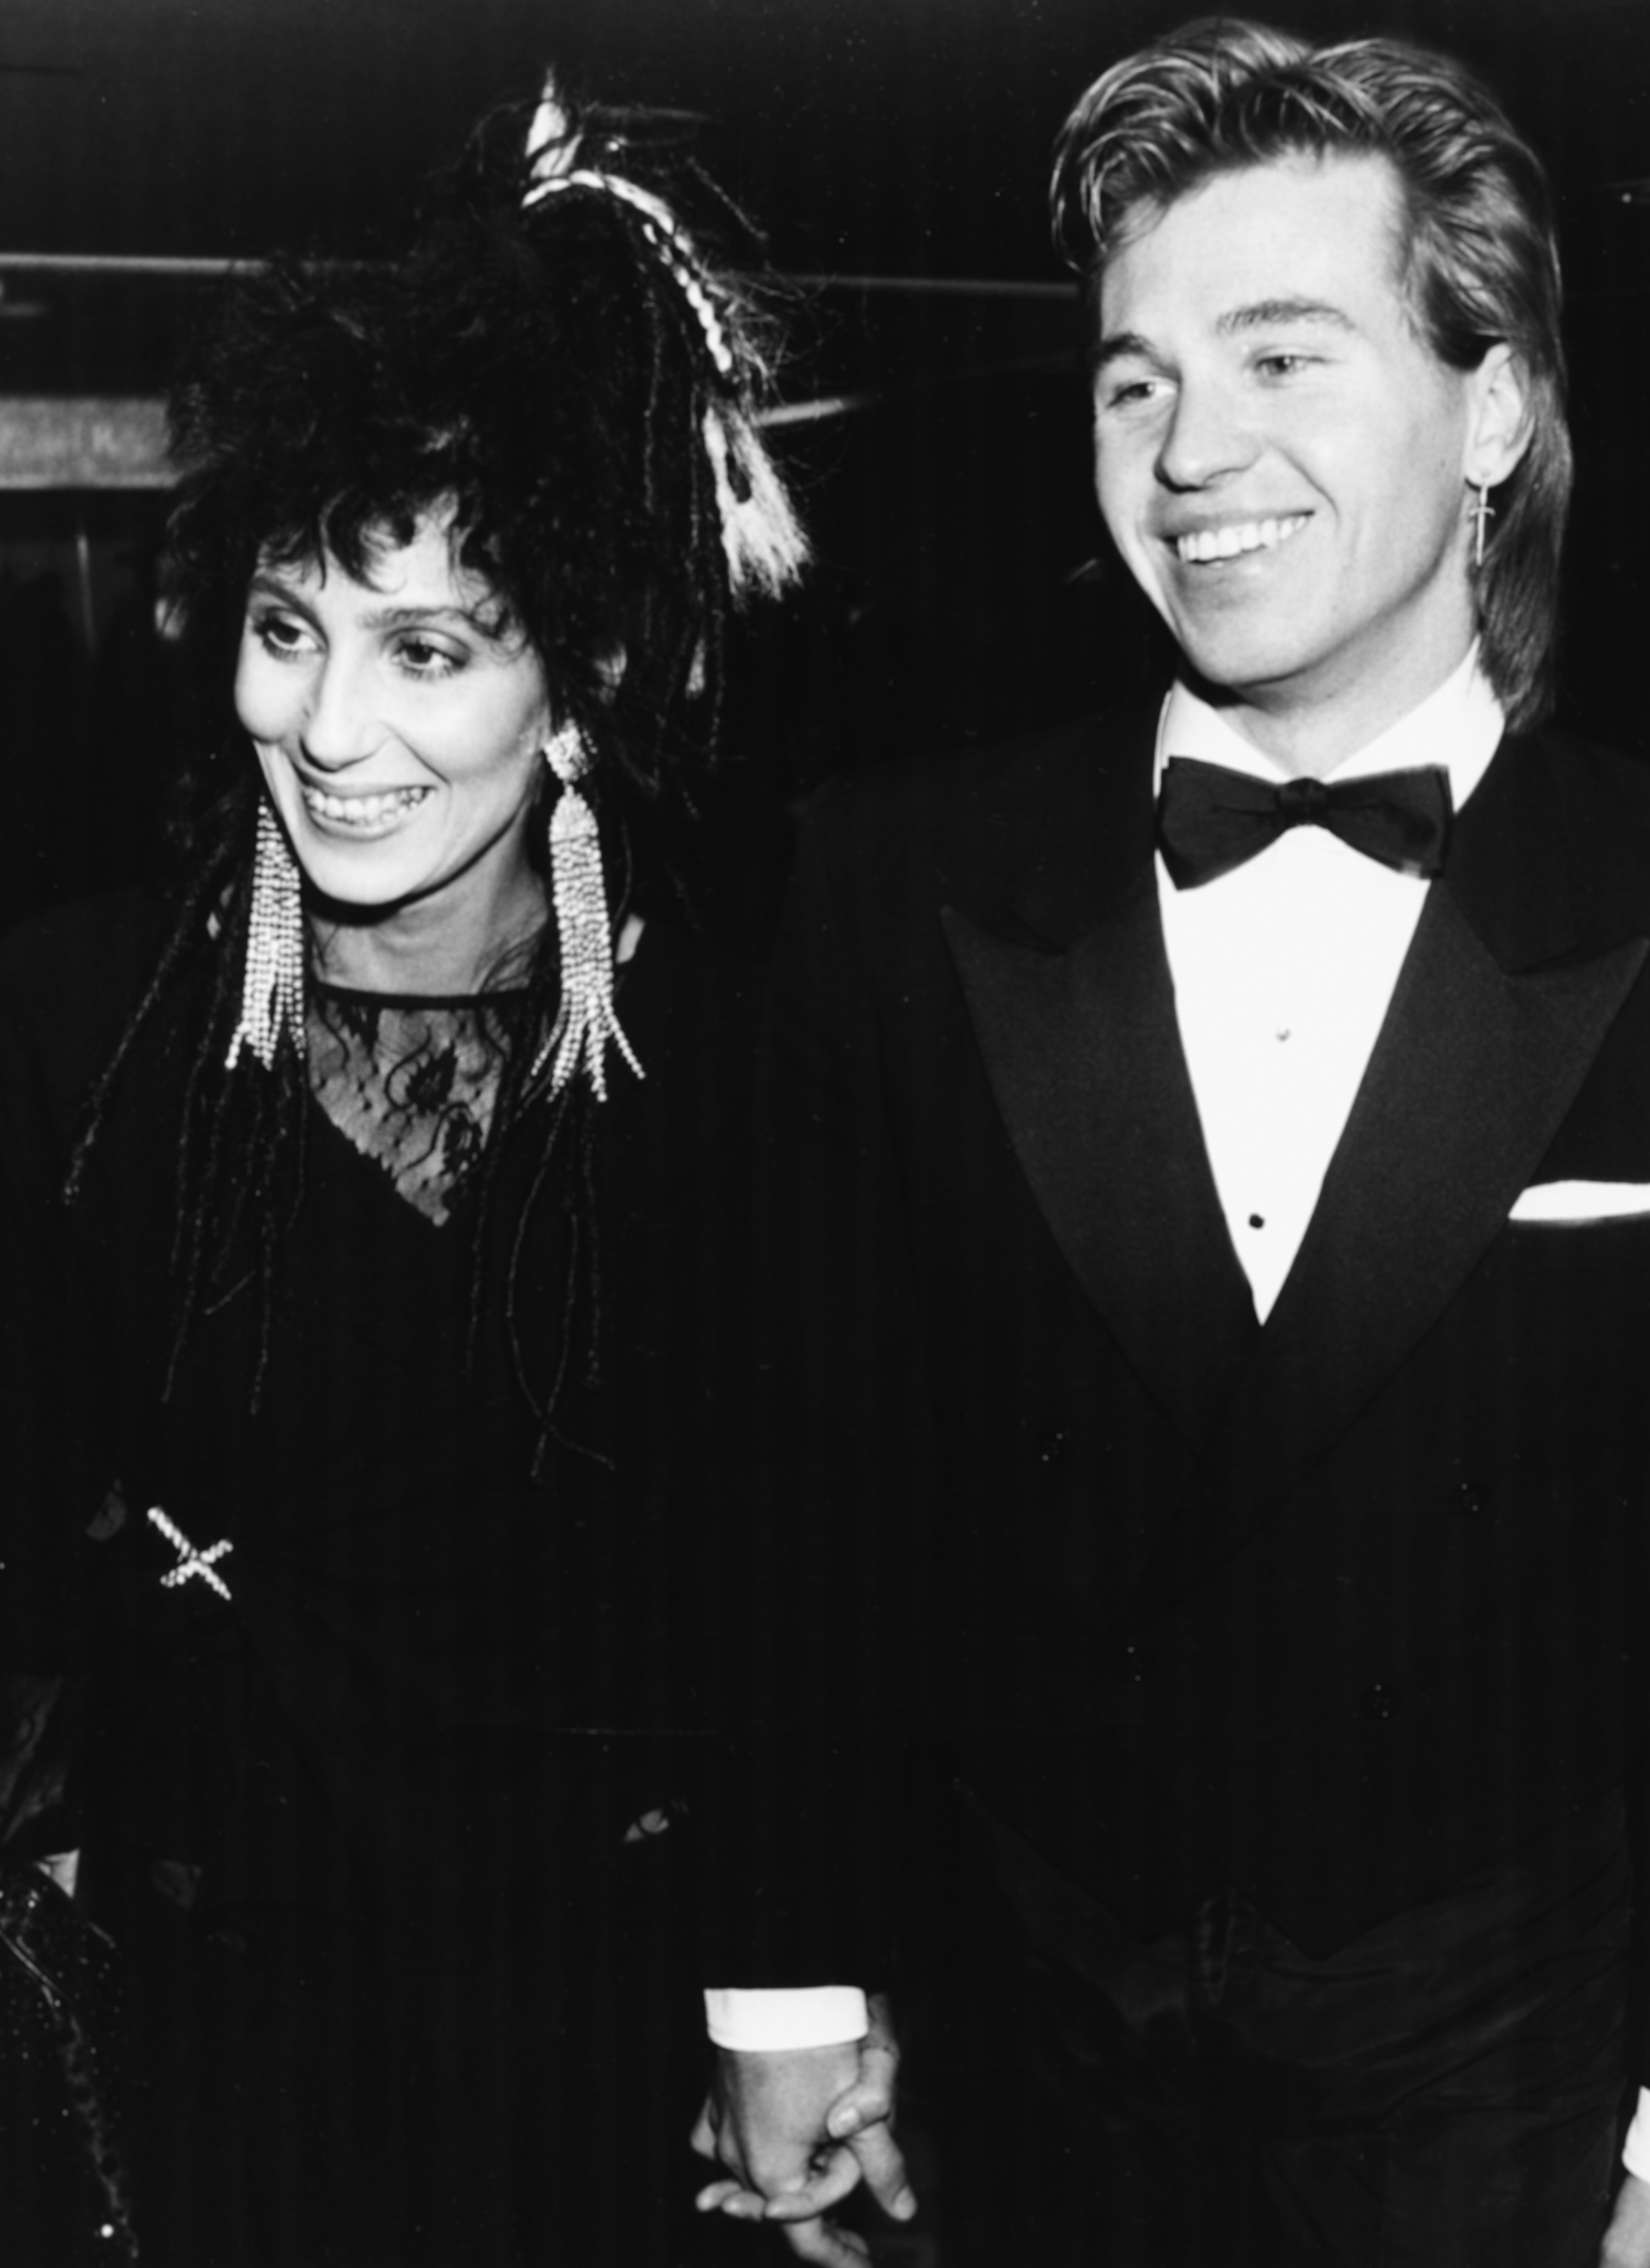 Singer Cher and actor Val Kilmer attending the BAFTA Awards hand in hand, London, March 25, 1984. | Source: Getty Images.